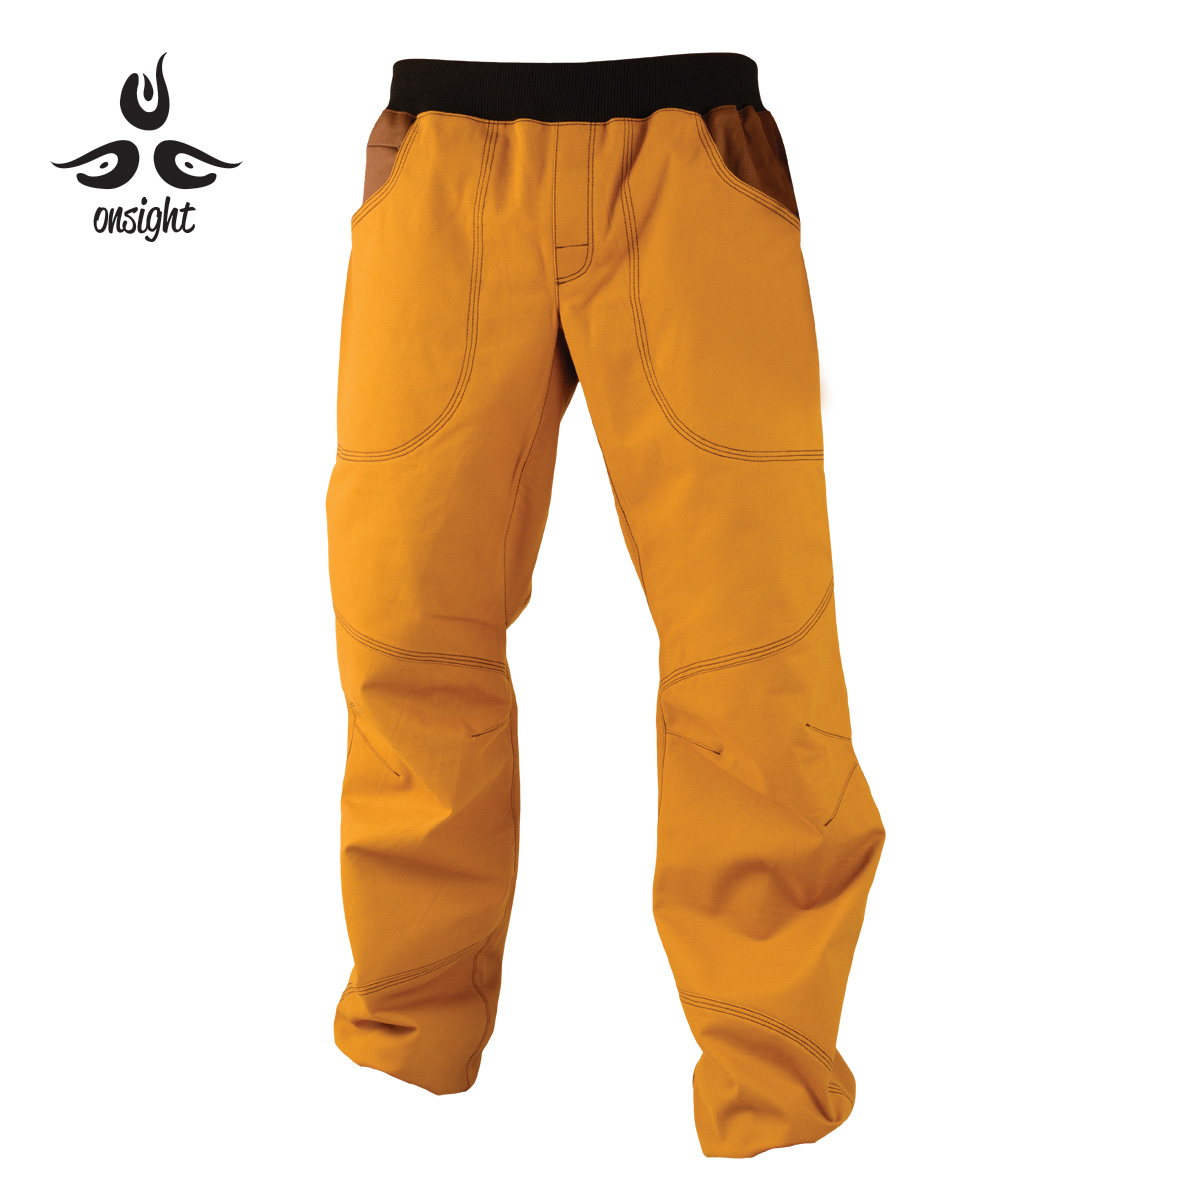 Onsight brown climbing pants